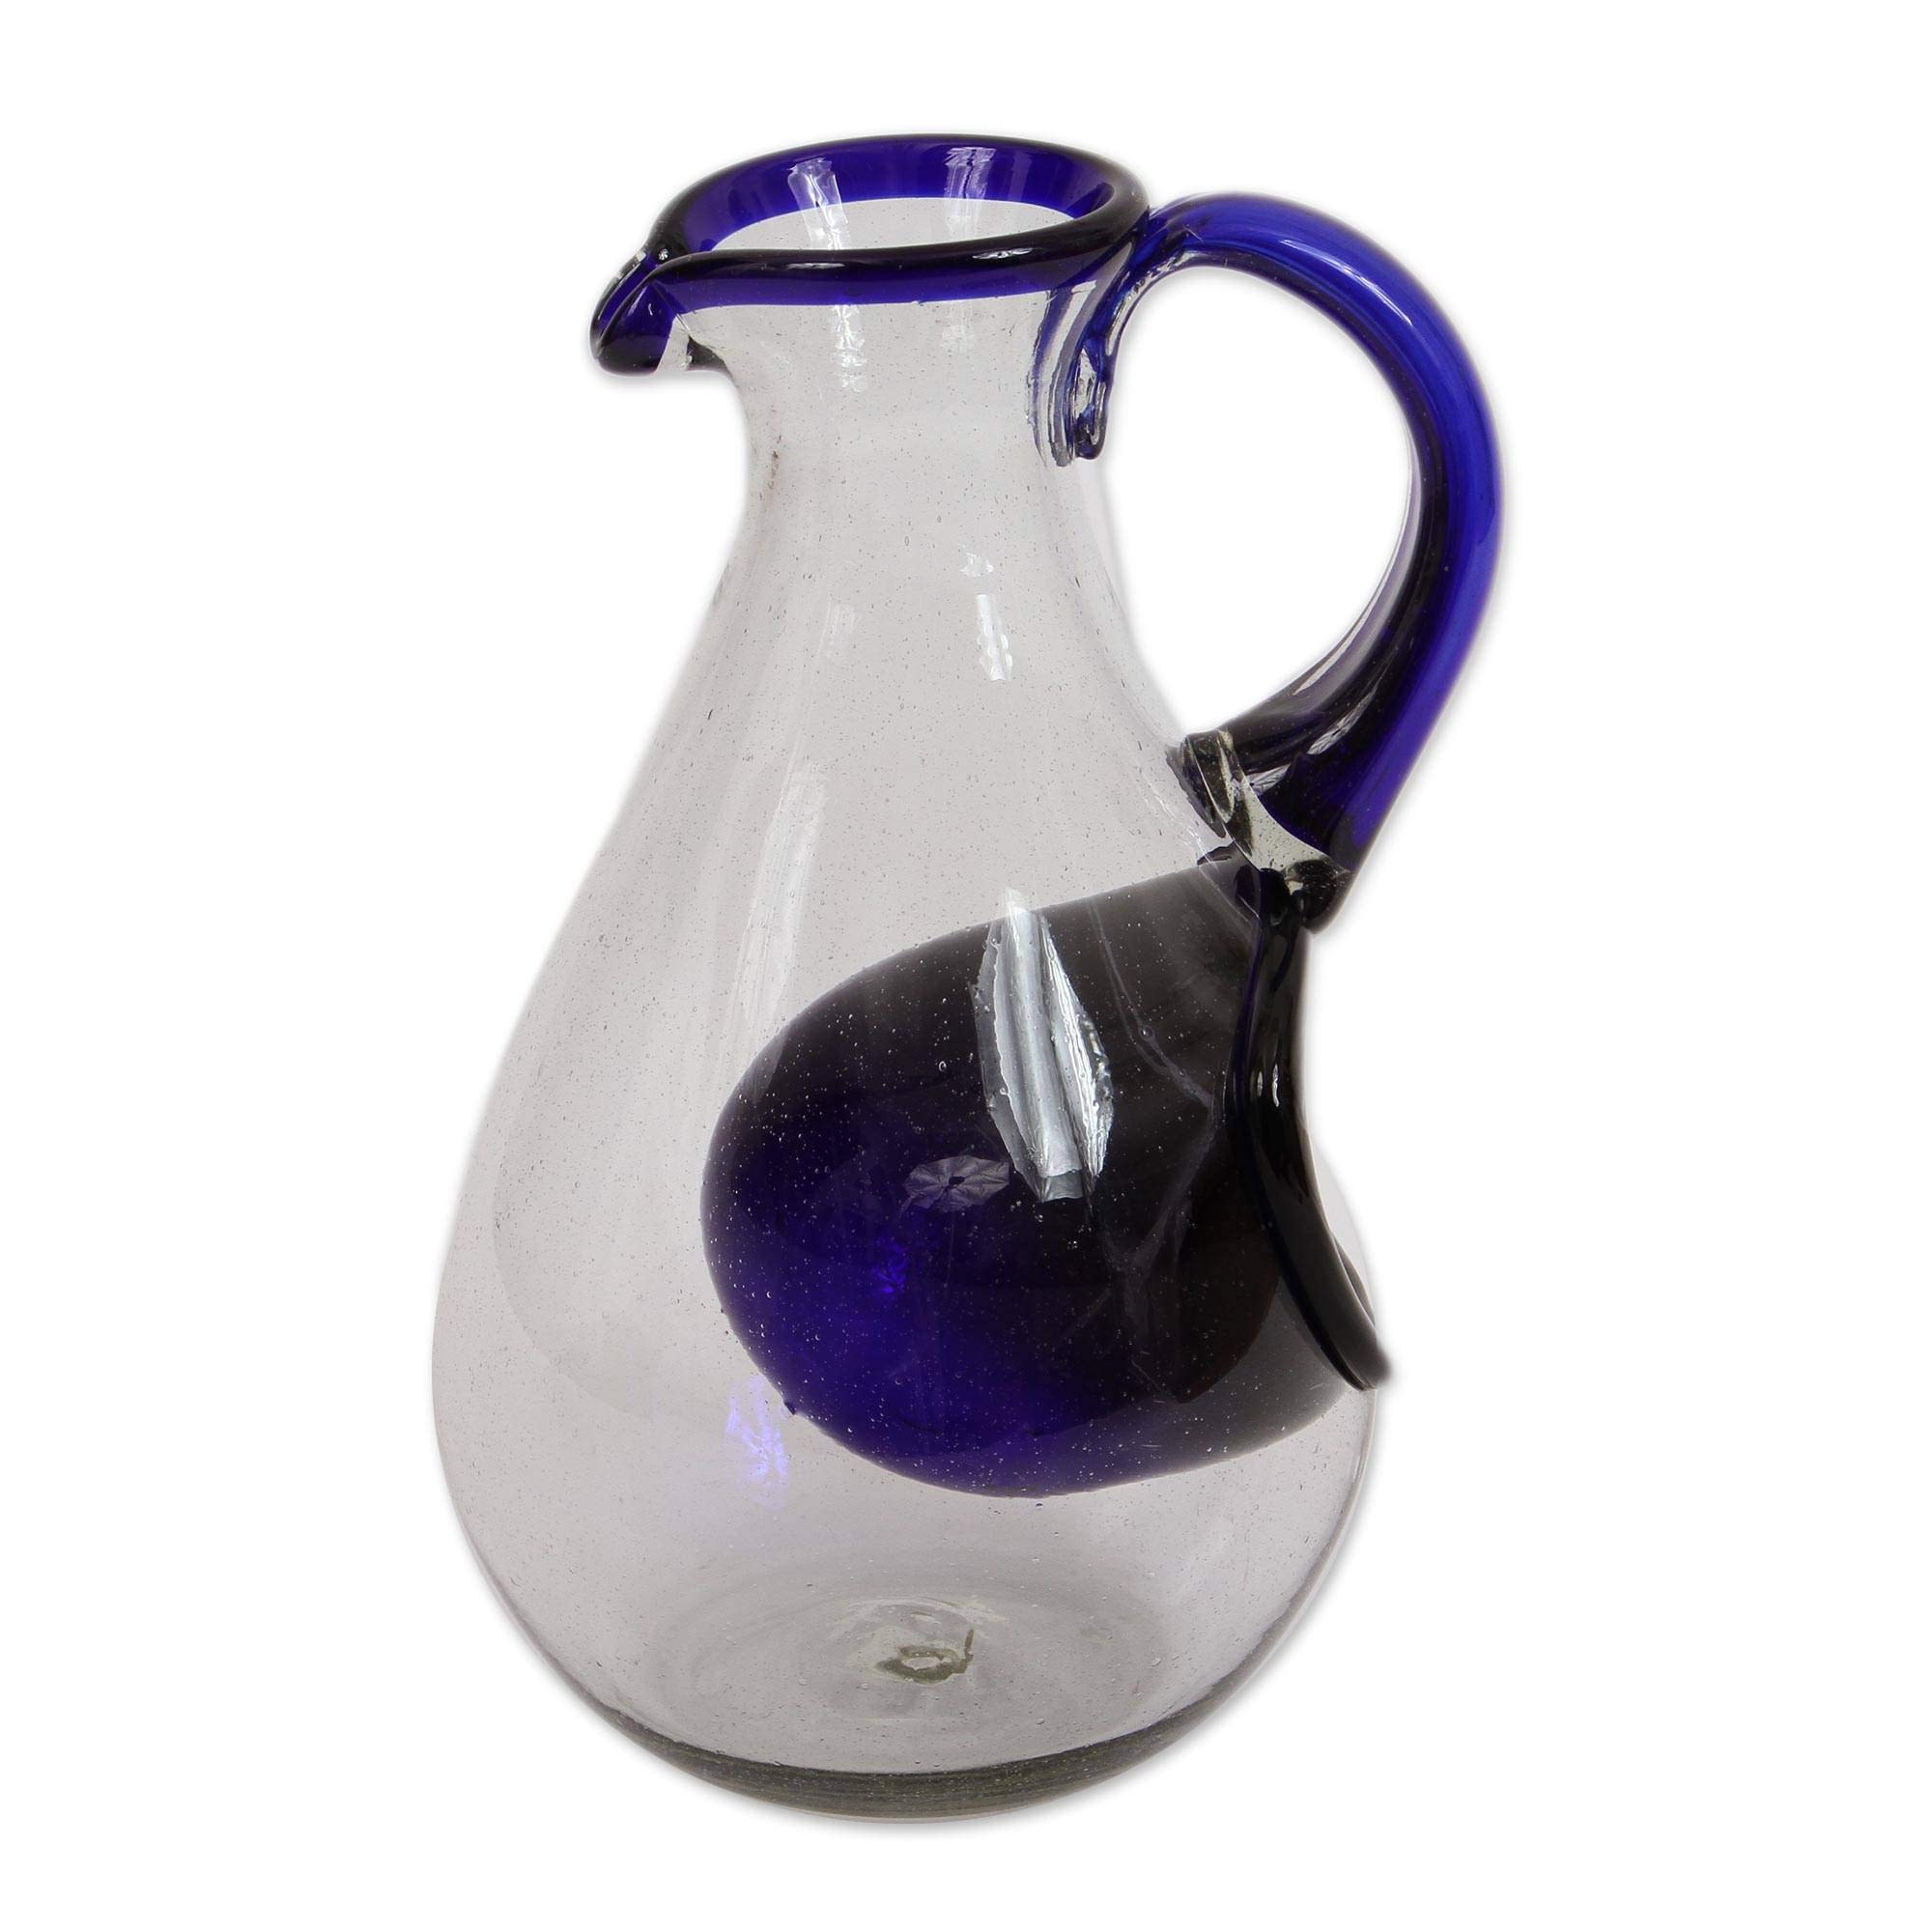 NOVICA Blue Eco-Friendly Hand Blown Glass Pitcher with Ice Chamber, 60 oz, Fresh Ocean' by NOVICA